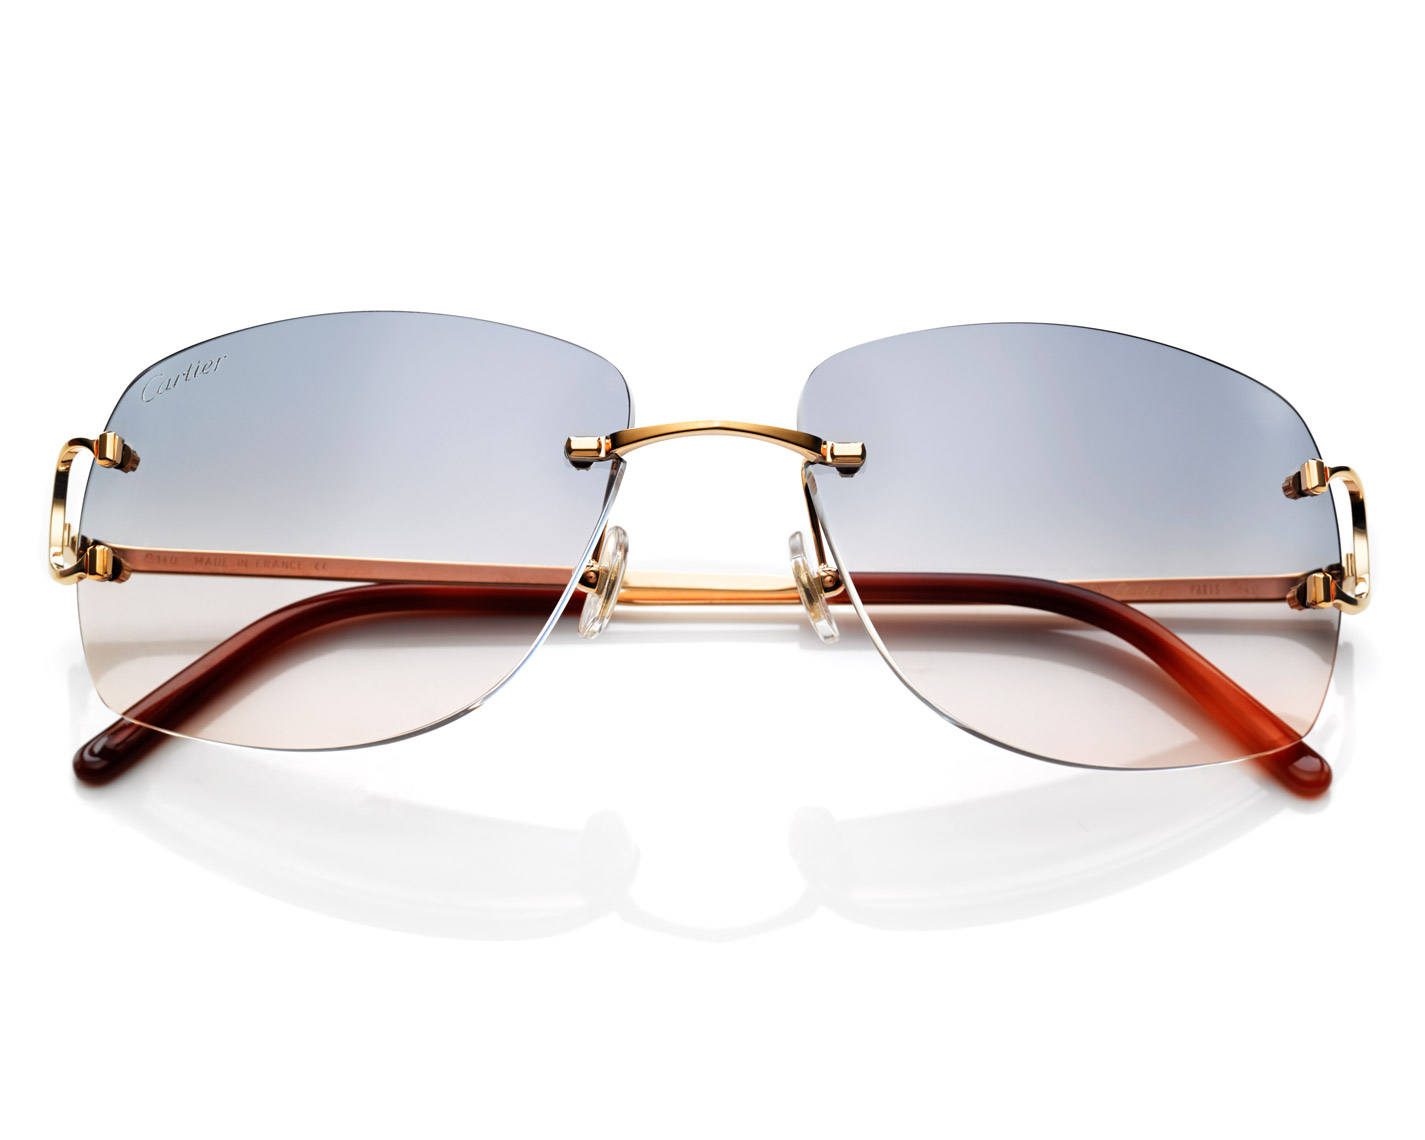 eyewear photography Cartier frames